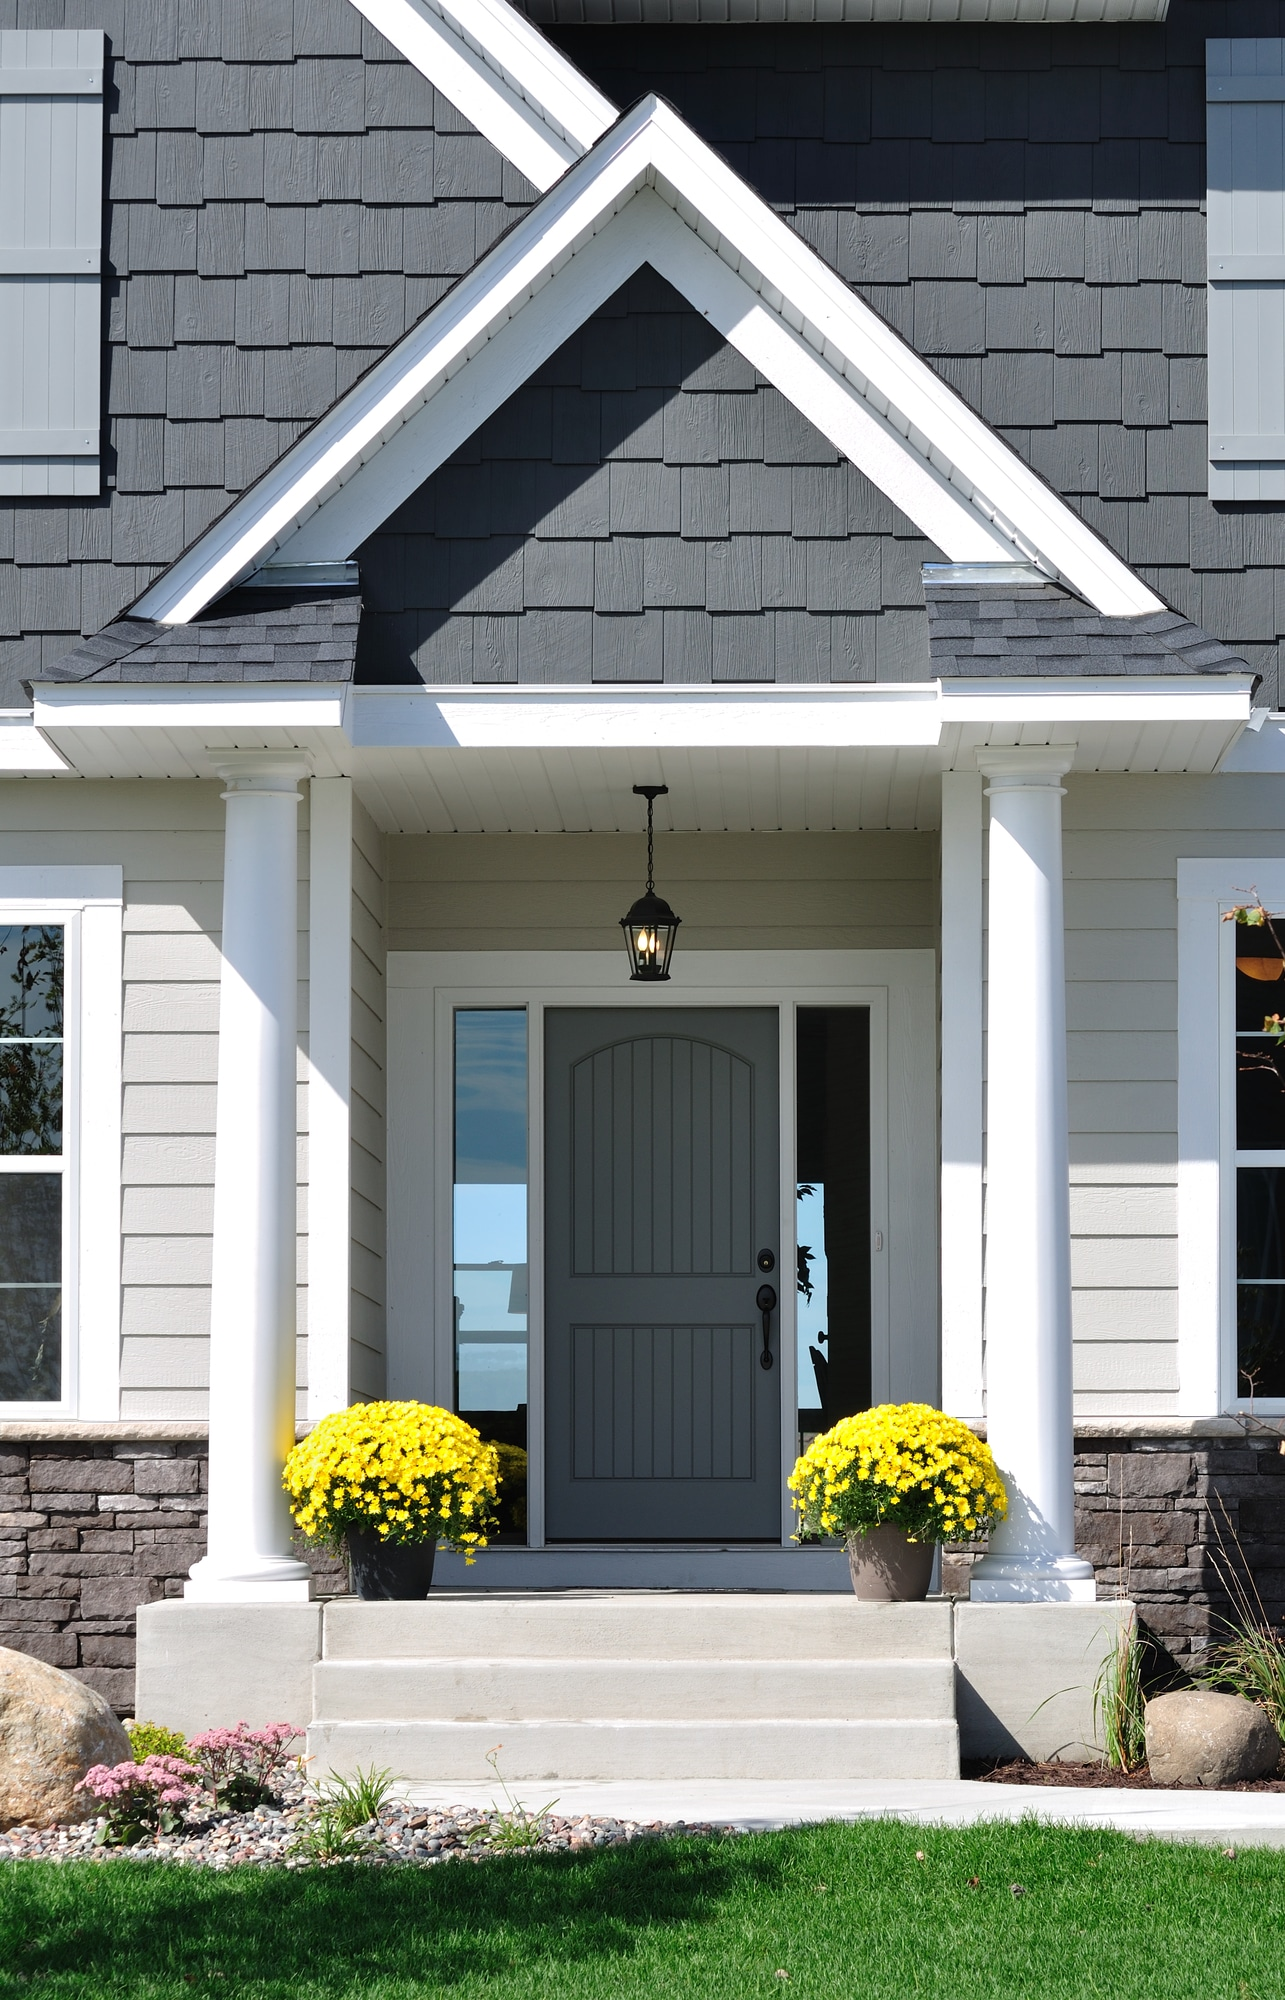 Adding Curb Appeal: 5 DIY Projects That Virtually Pay for Themselves